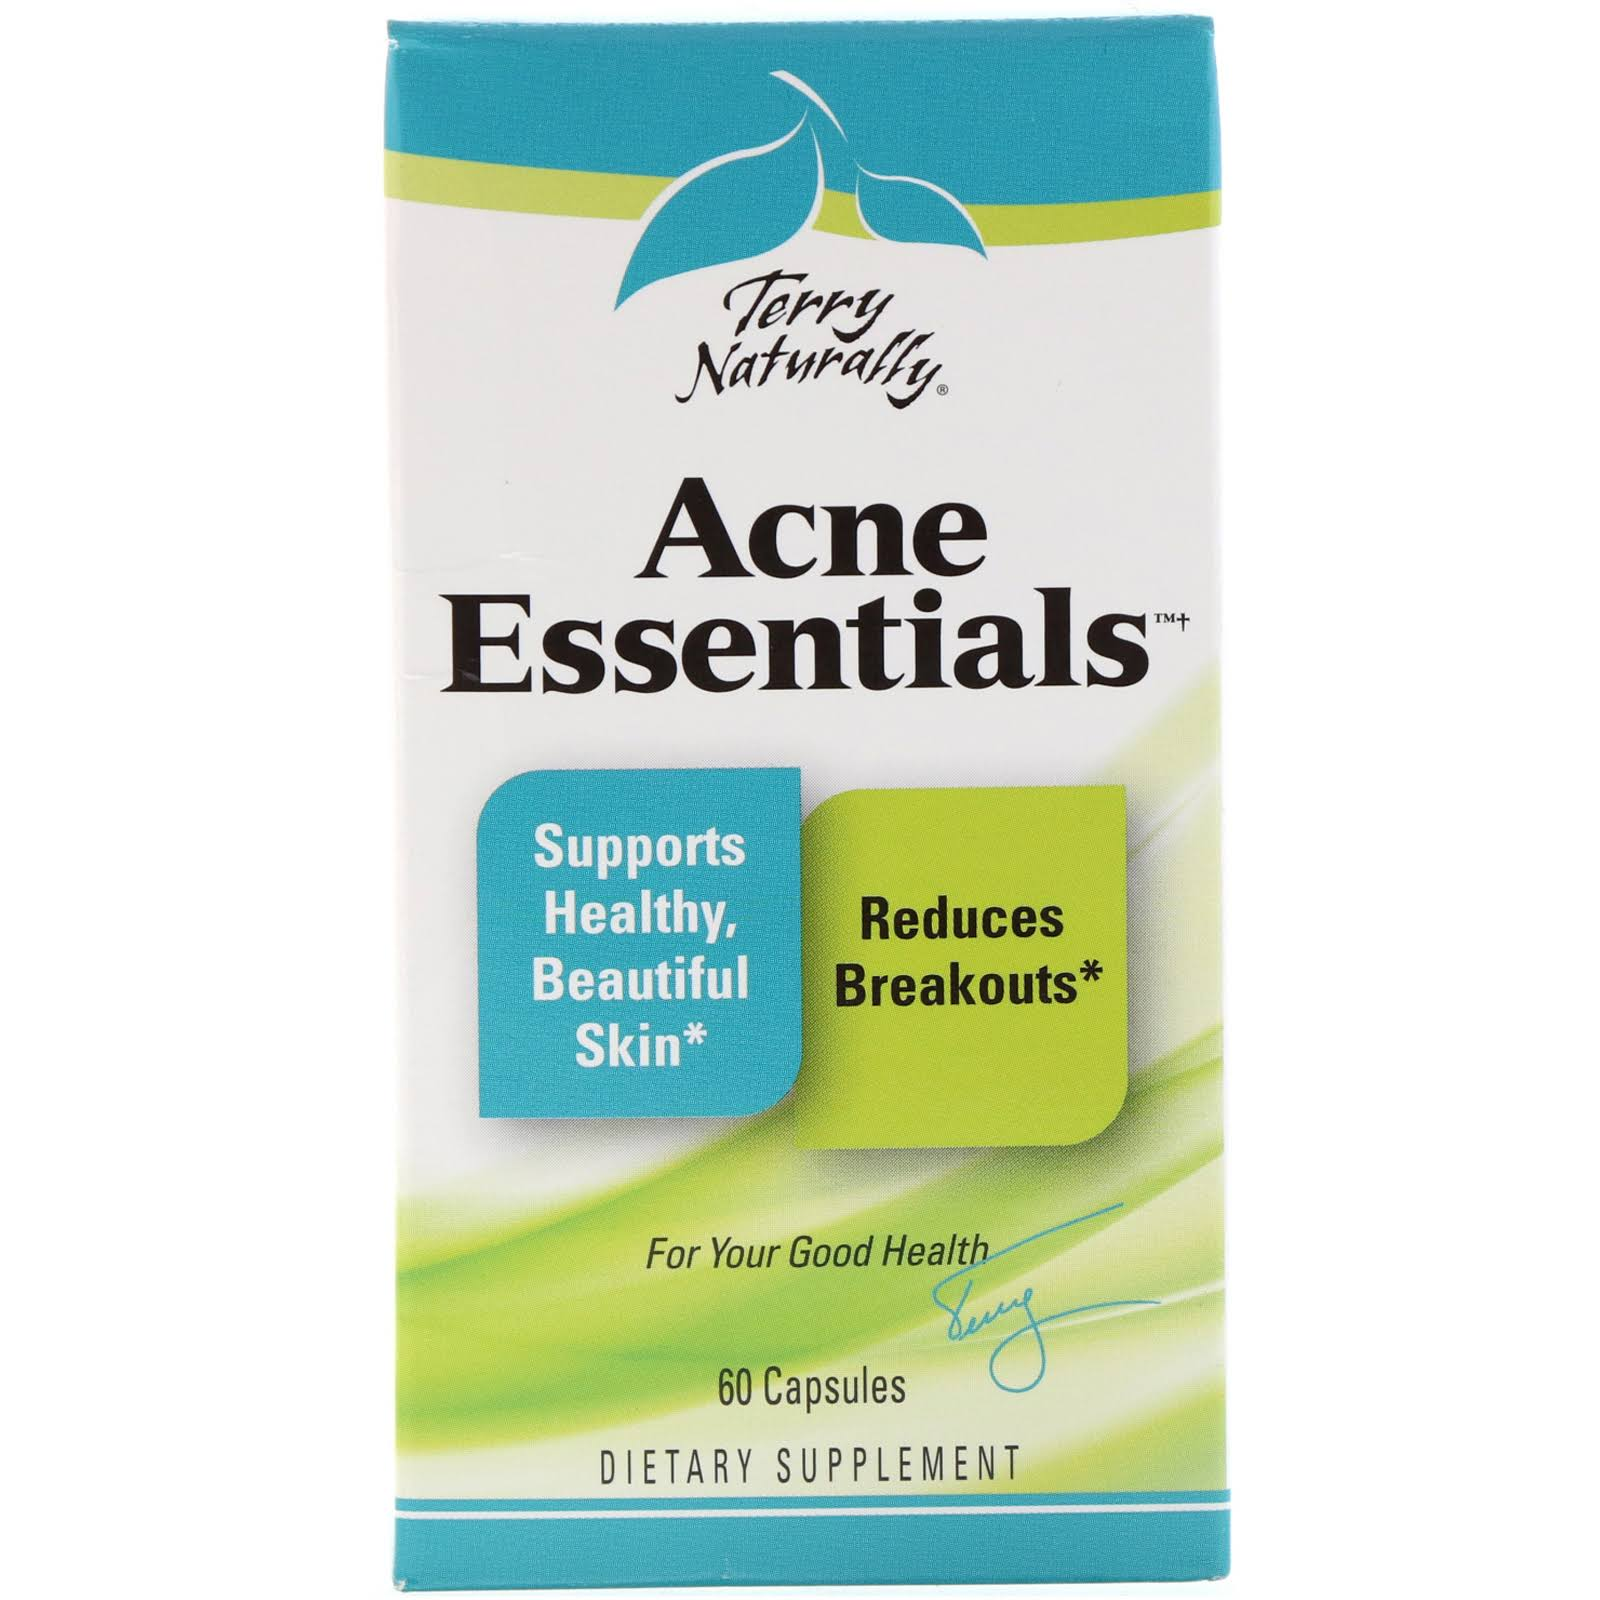 Terry Naturally Acne Essentials Capsule Supplement - 60ct